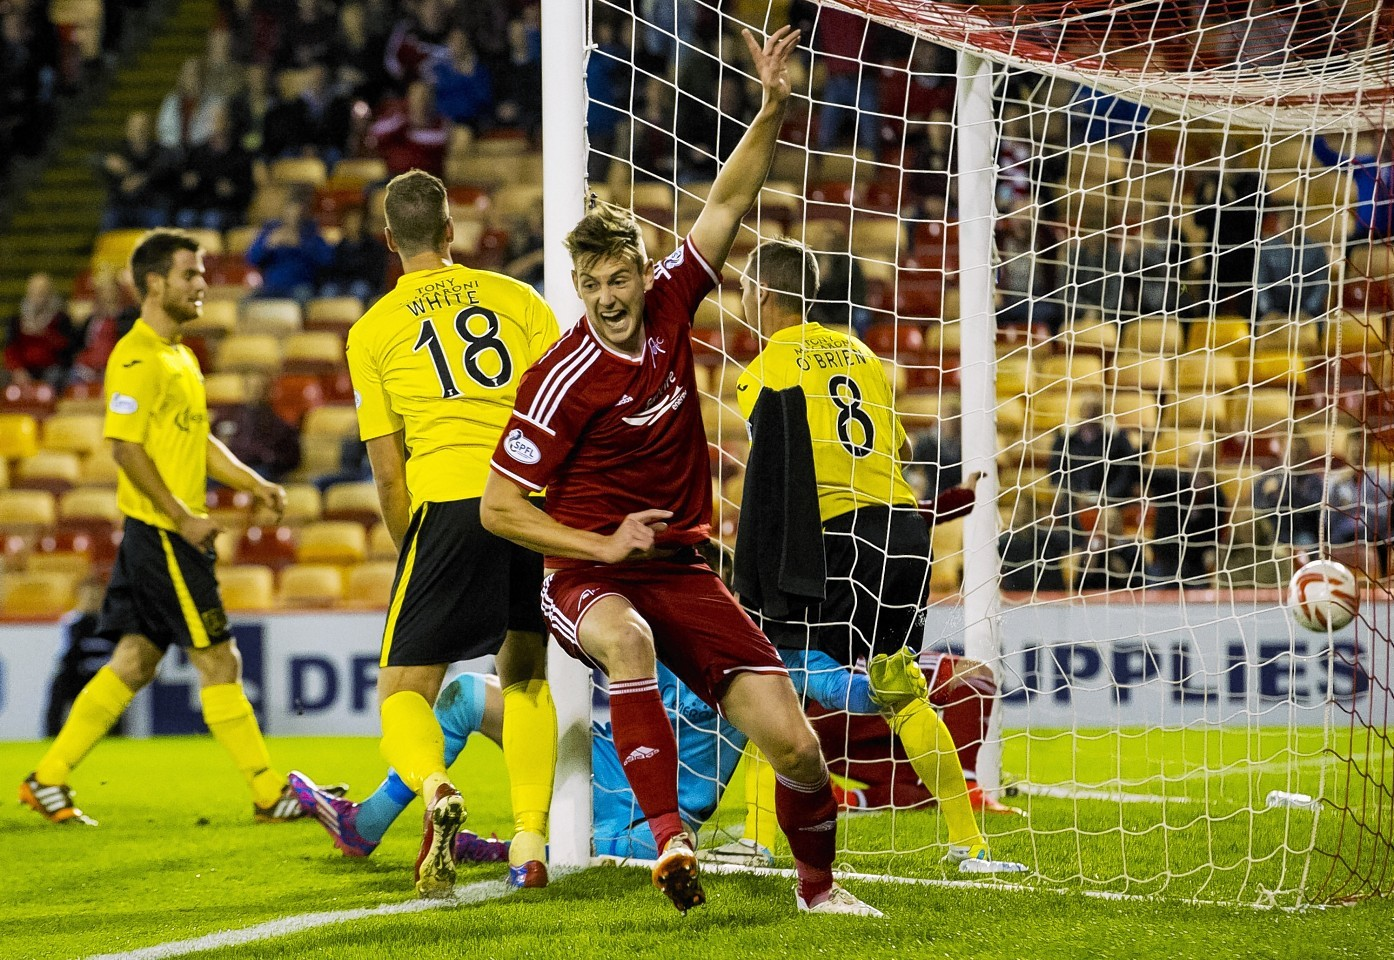 Taylor opened the scoring and impressed in defence throughout the match